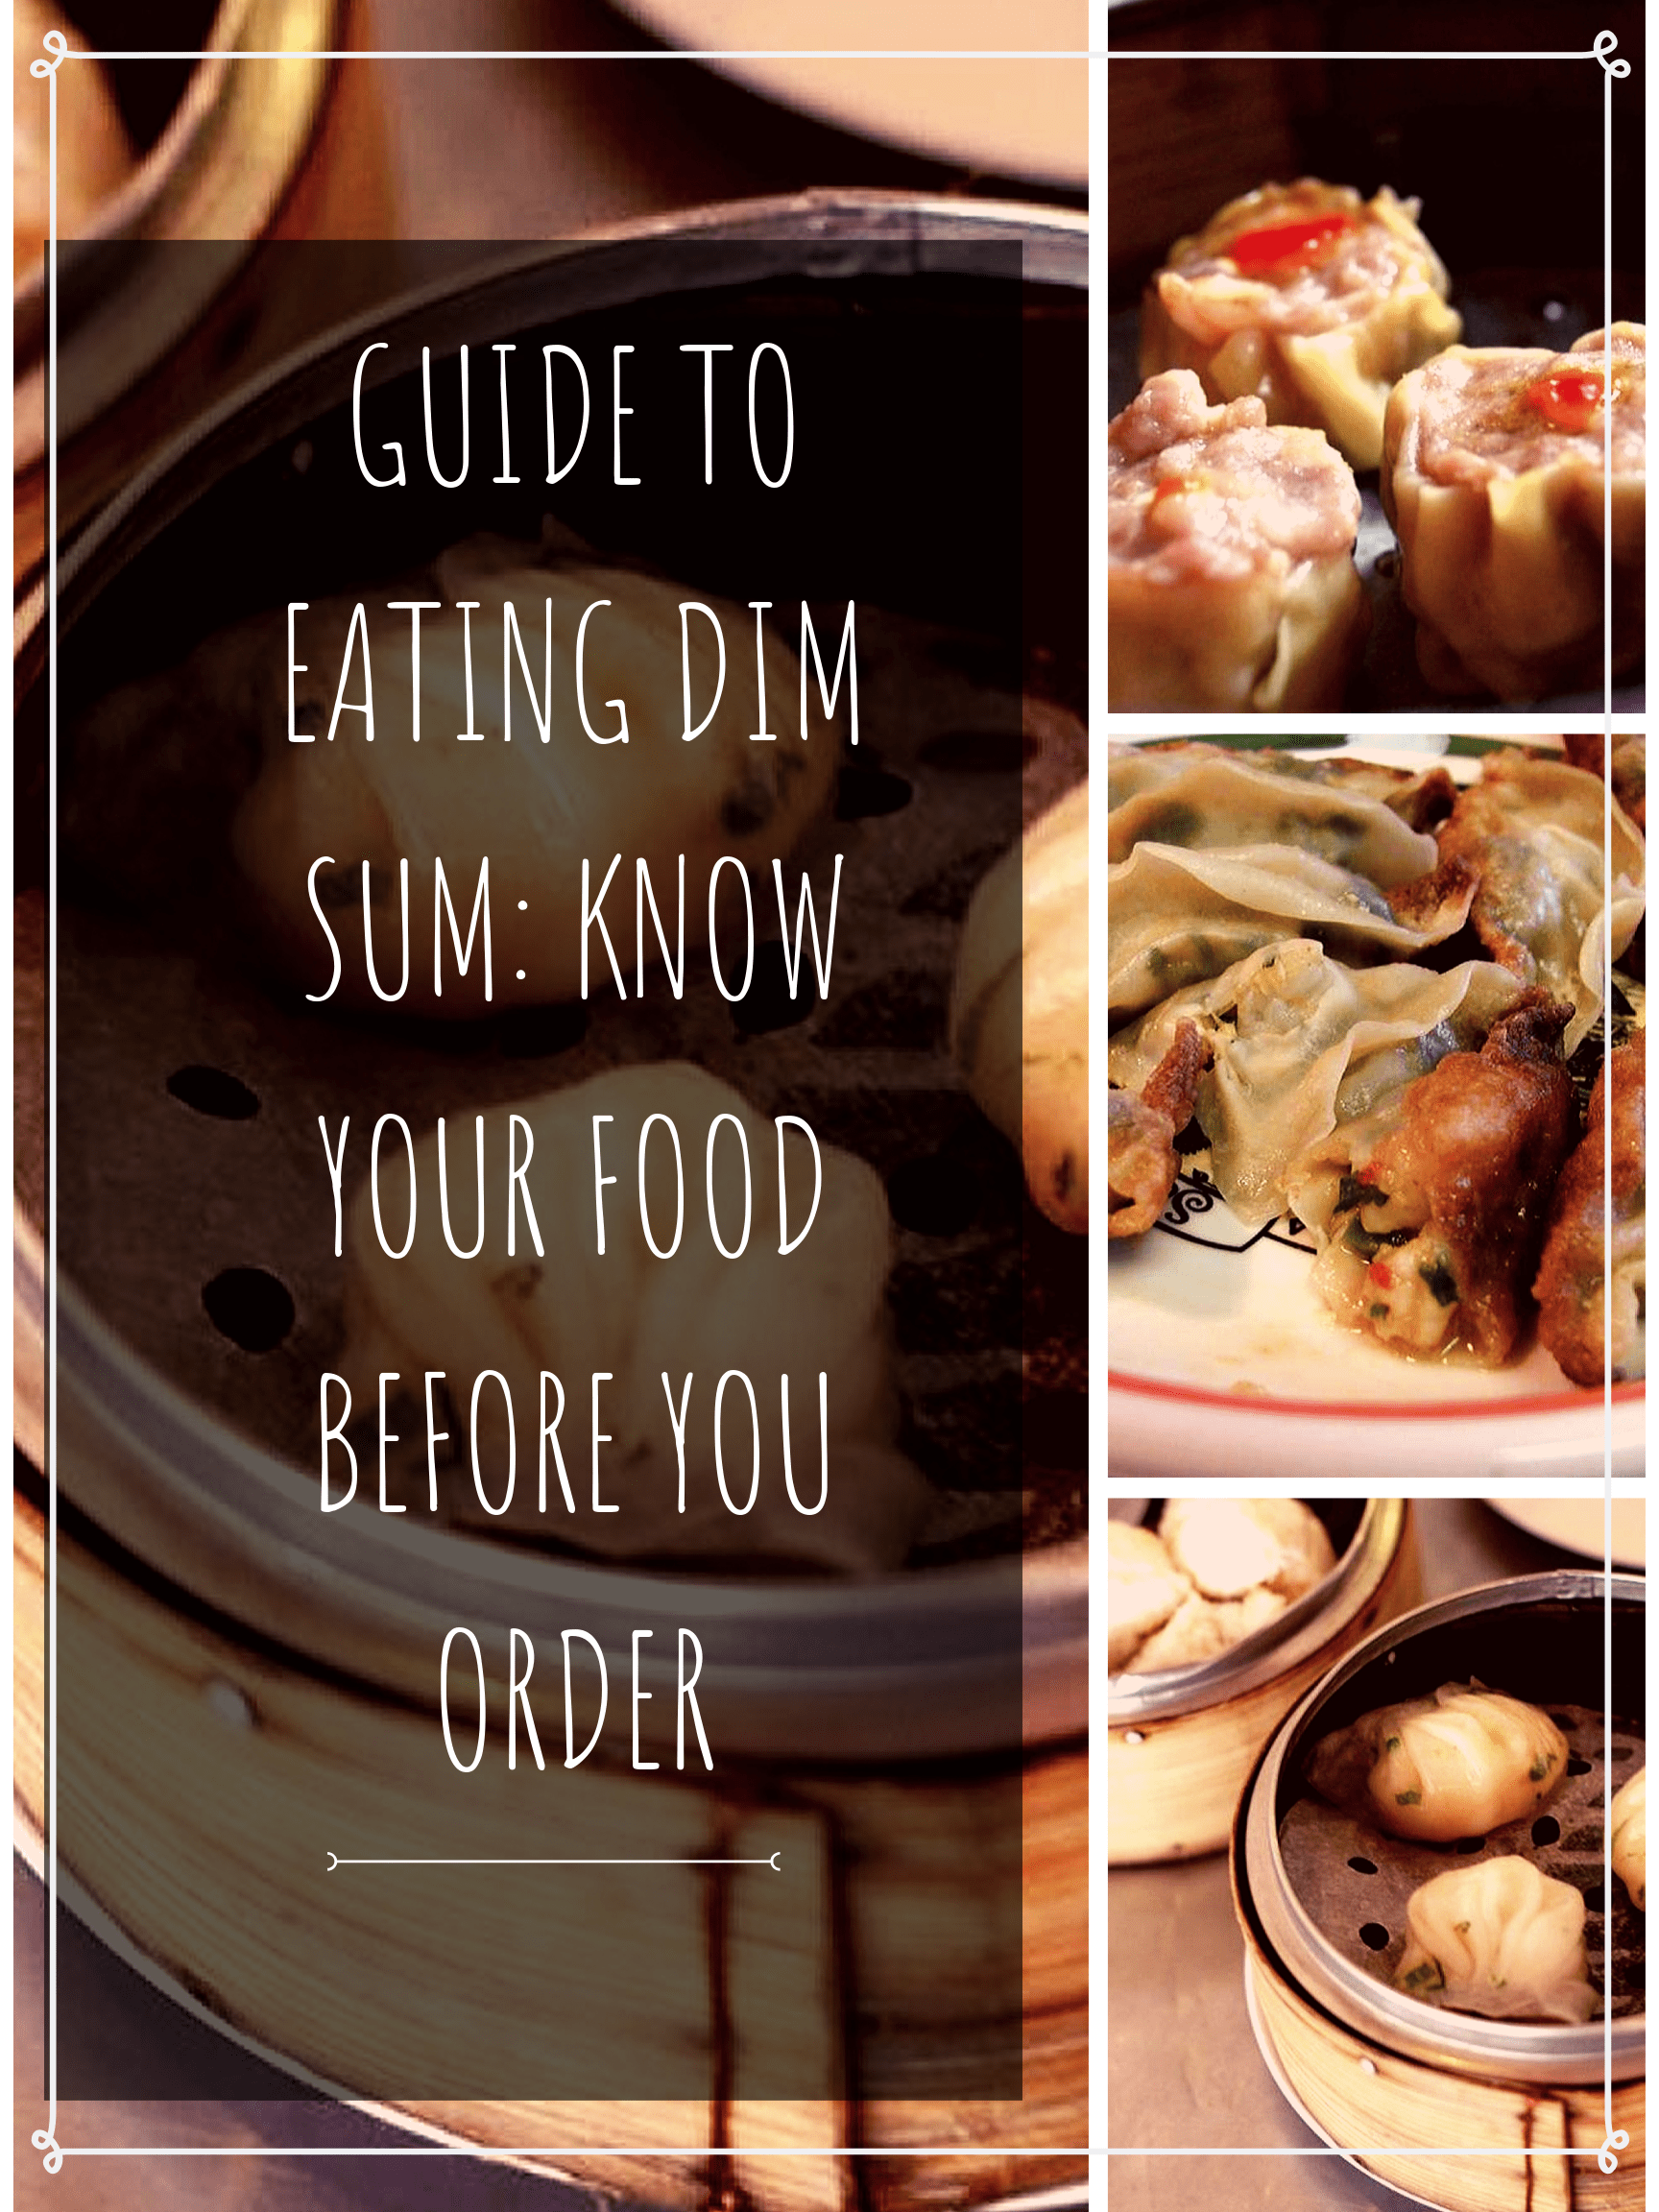 GUIDE TO EATING DIM SUM_ KNOW YOUR FOOD BEFORE YOU ORDER